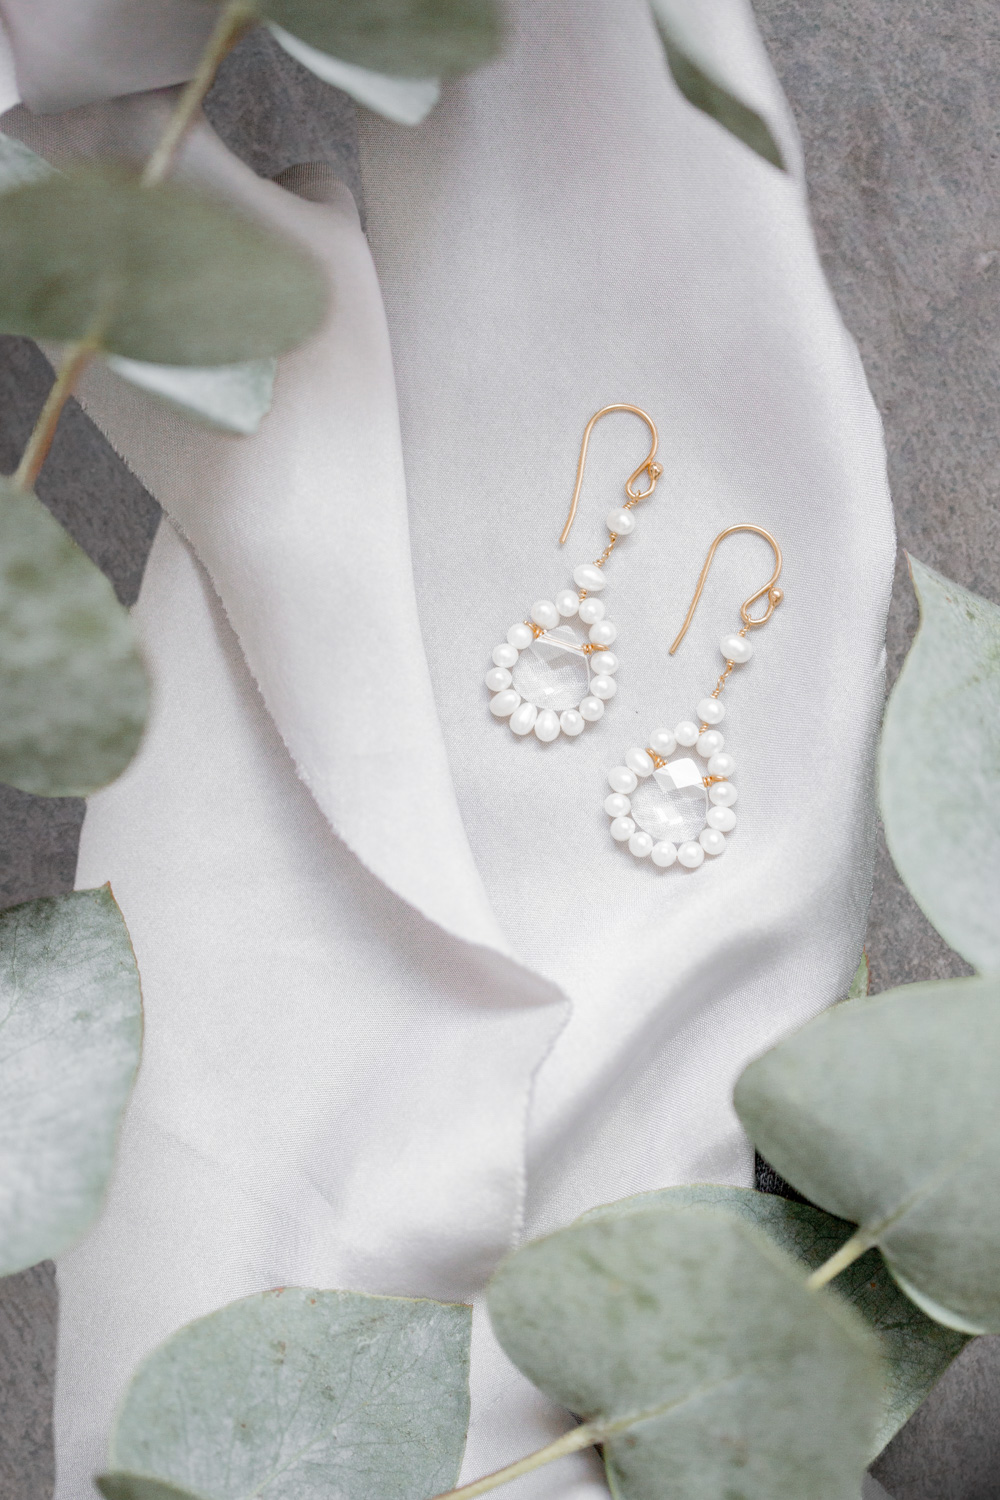 In these expressive earrings, a drop-shaped, faceted Swarovski crystal is framed by white freshwater pearls. Two small individual pearls provide a filigree silhouette and extra highlights at the top.